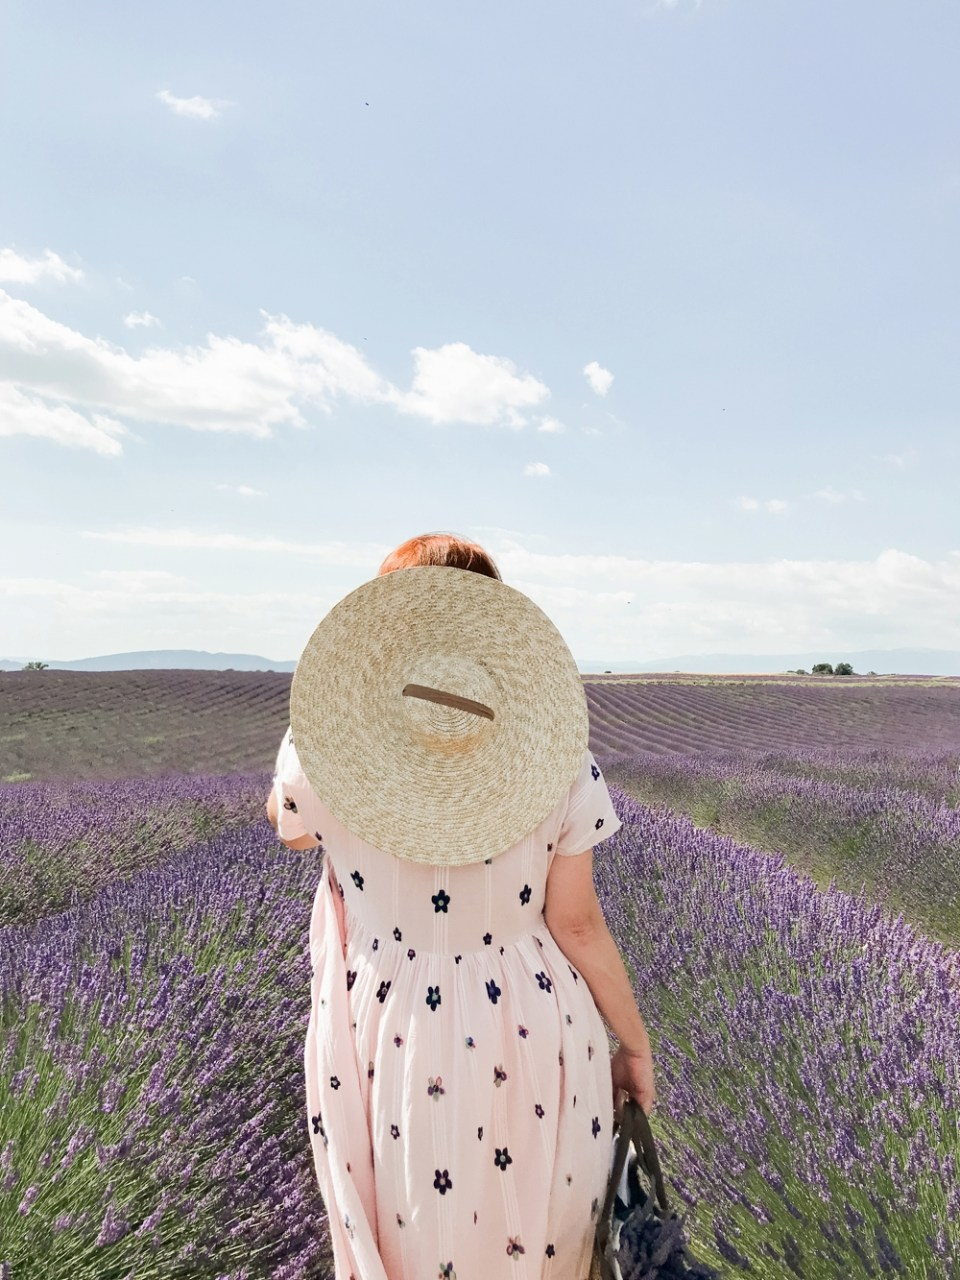 Commercial Photographer Brand Shoot Lavender Fields Provence